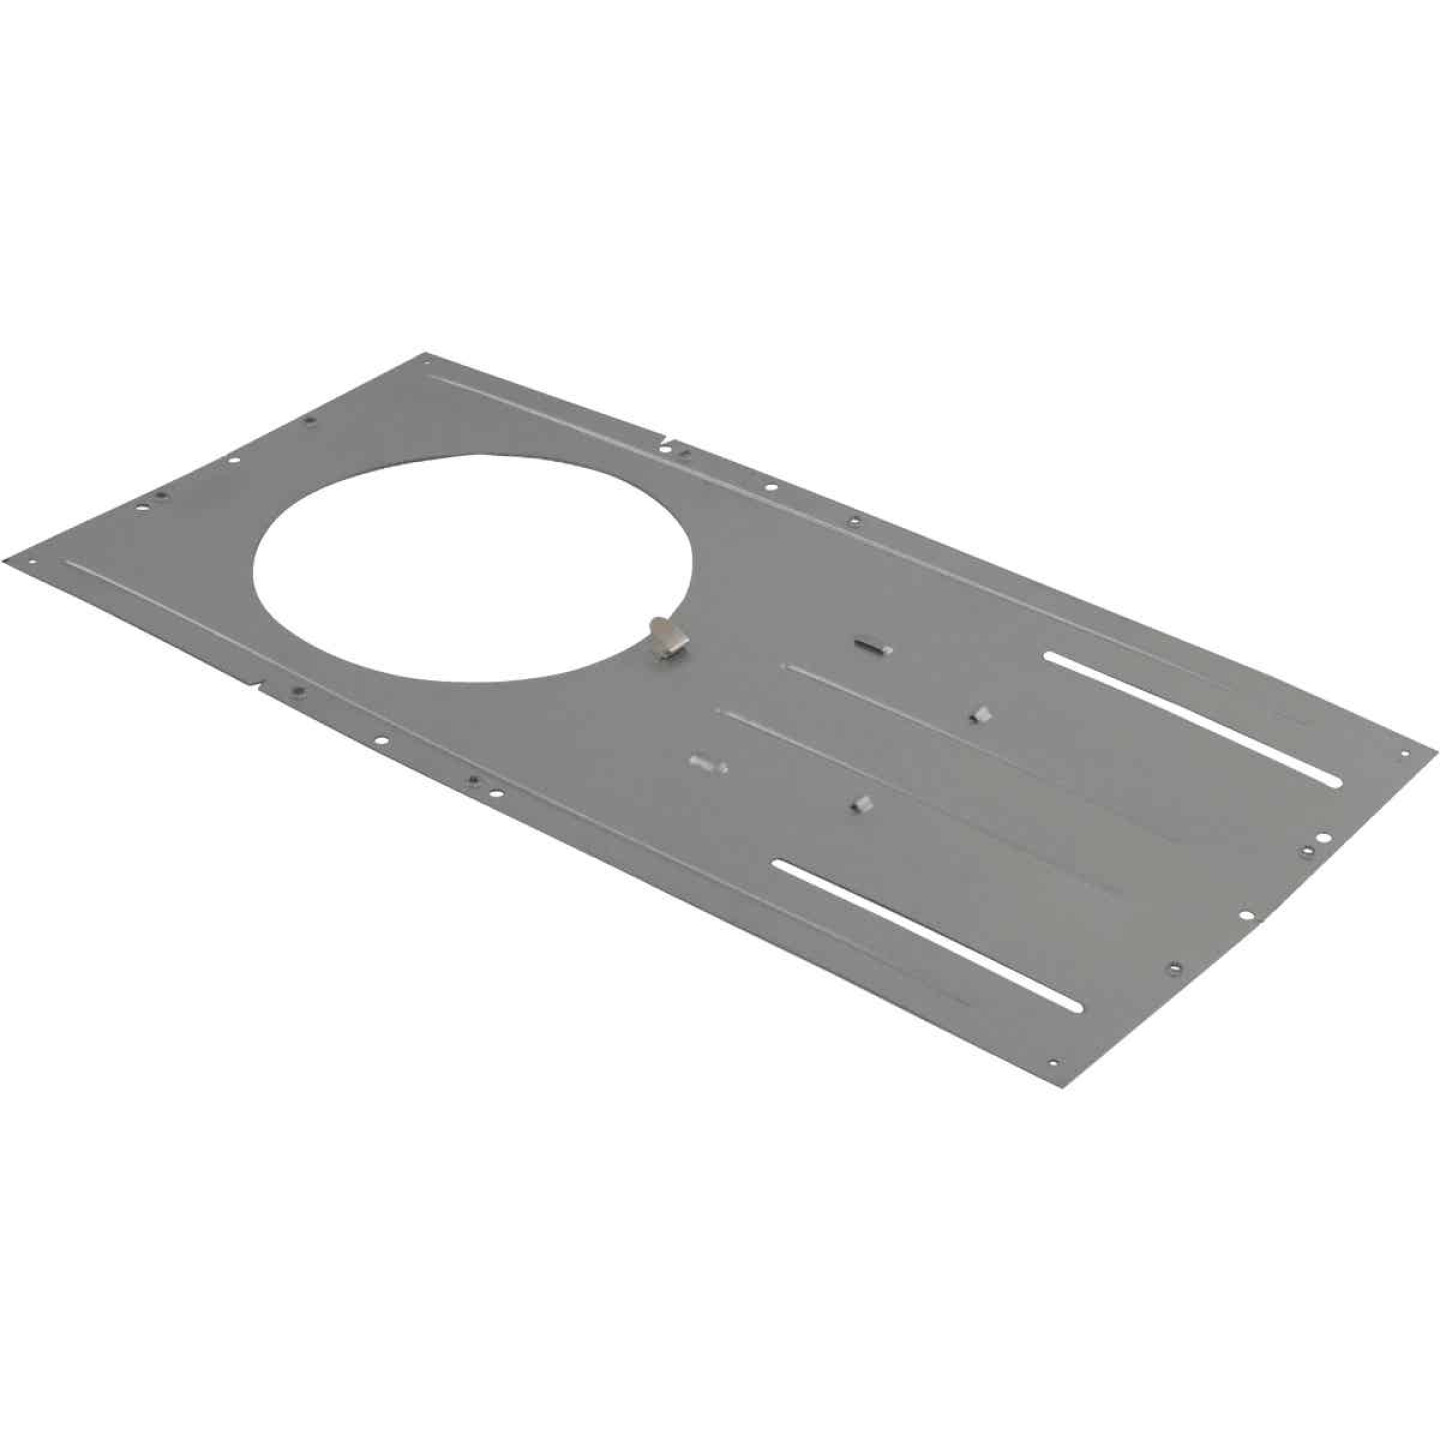 Liteline Trenz ThinLED 6 In. Round Recessed Fixture Mounting Plate Image 1